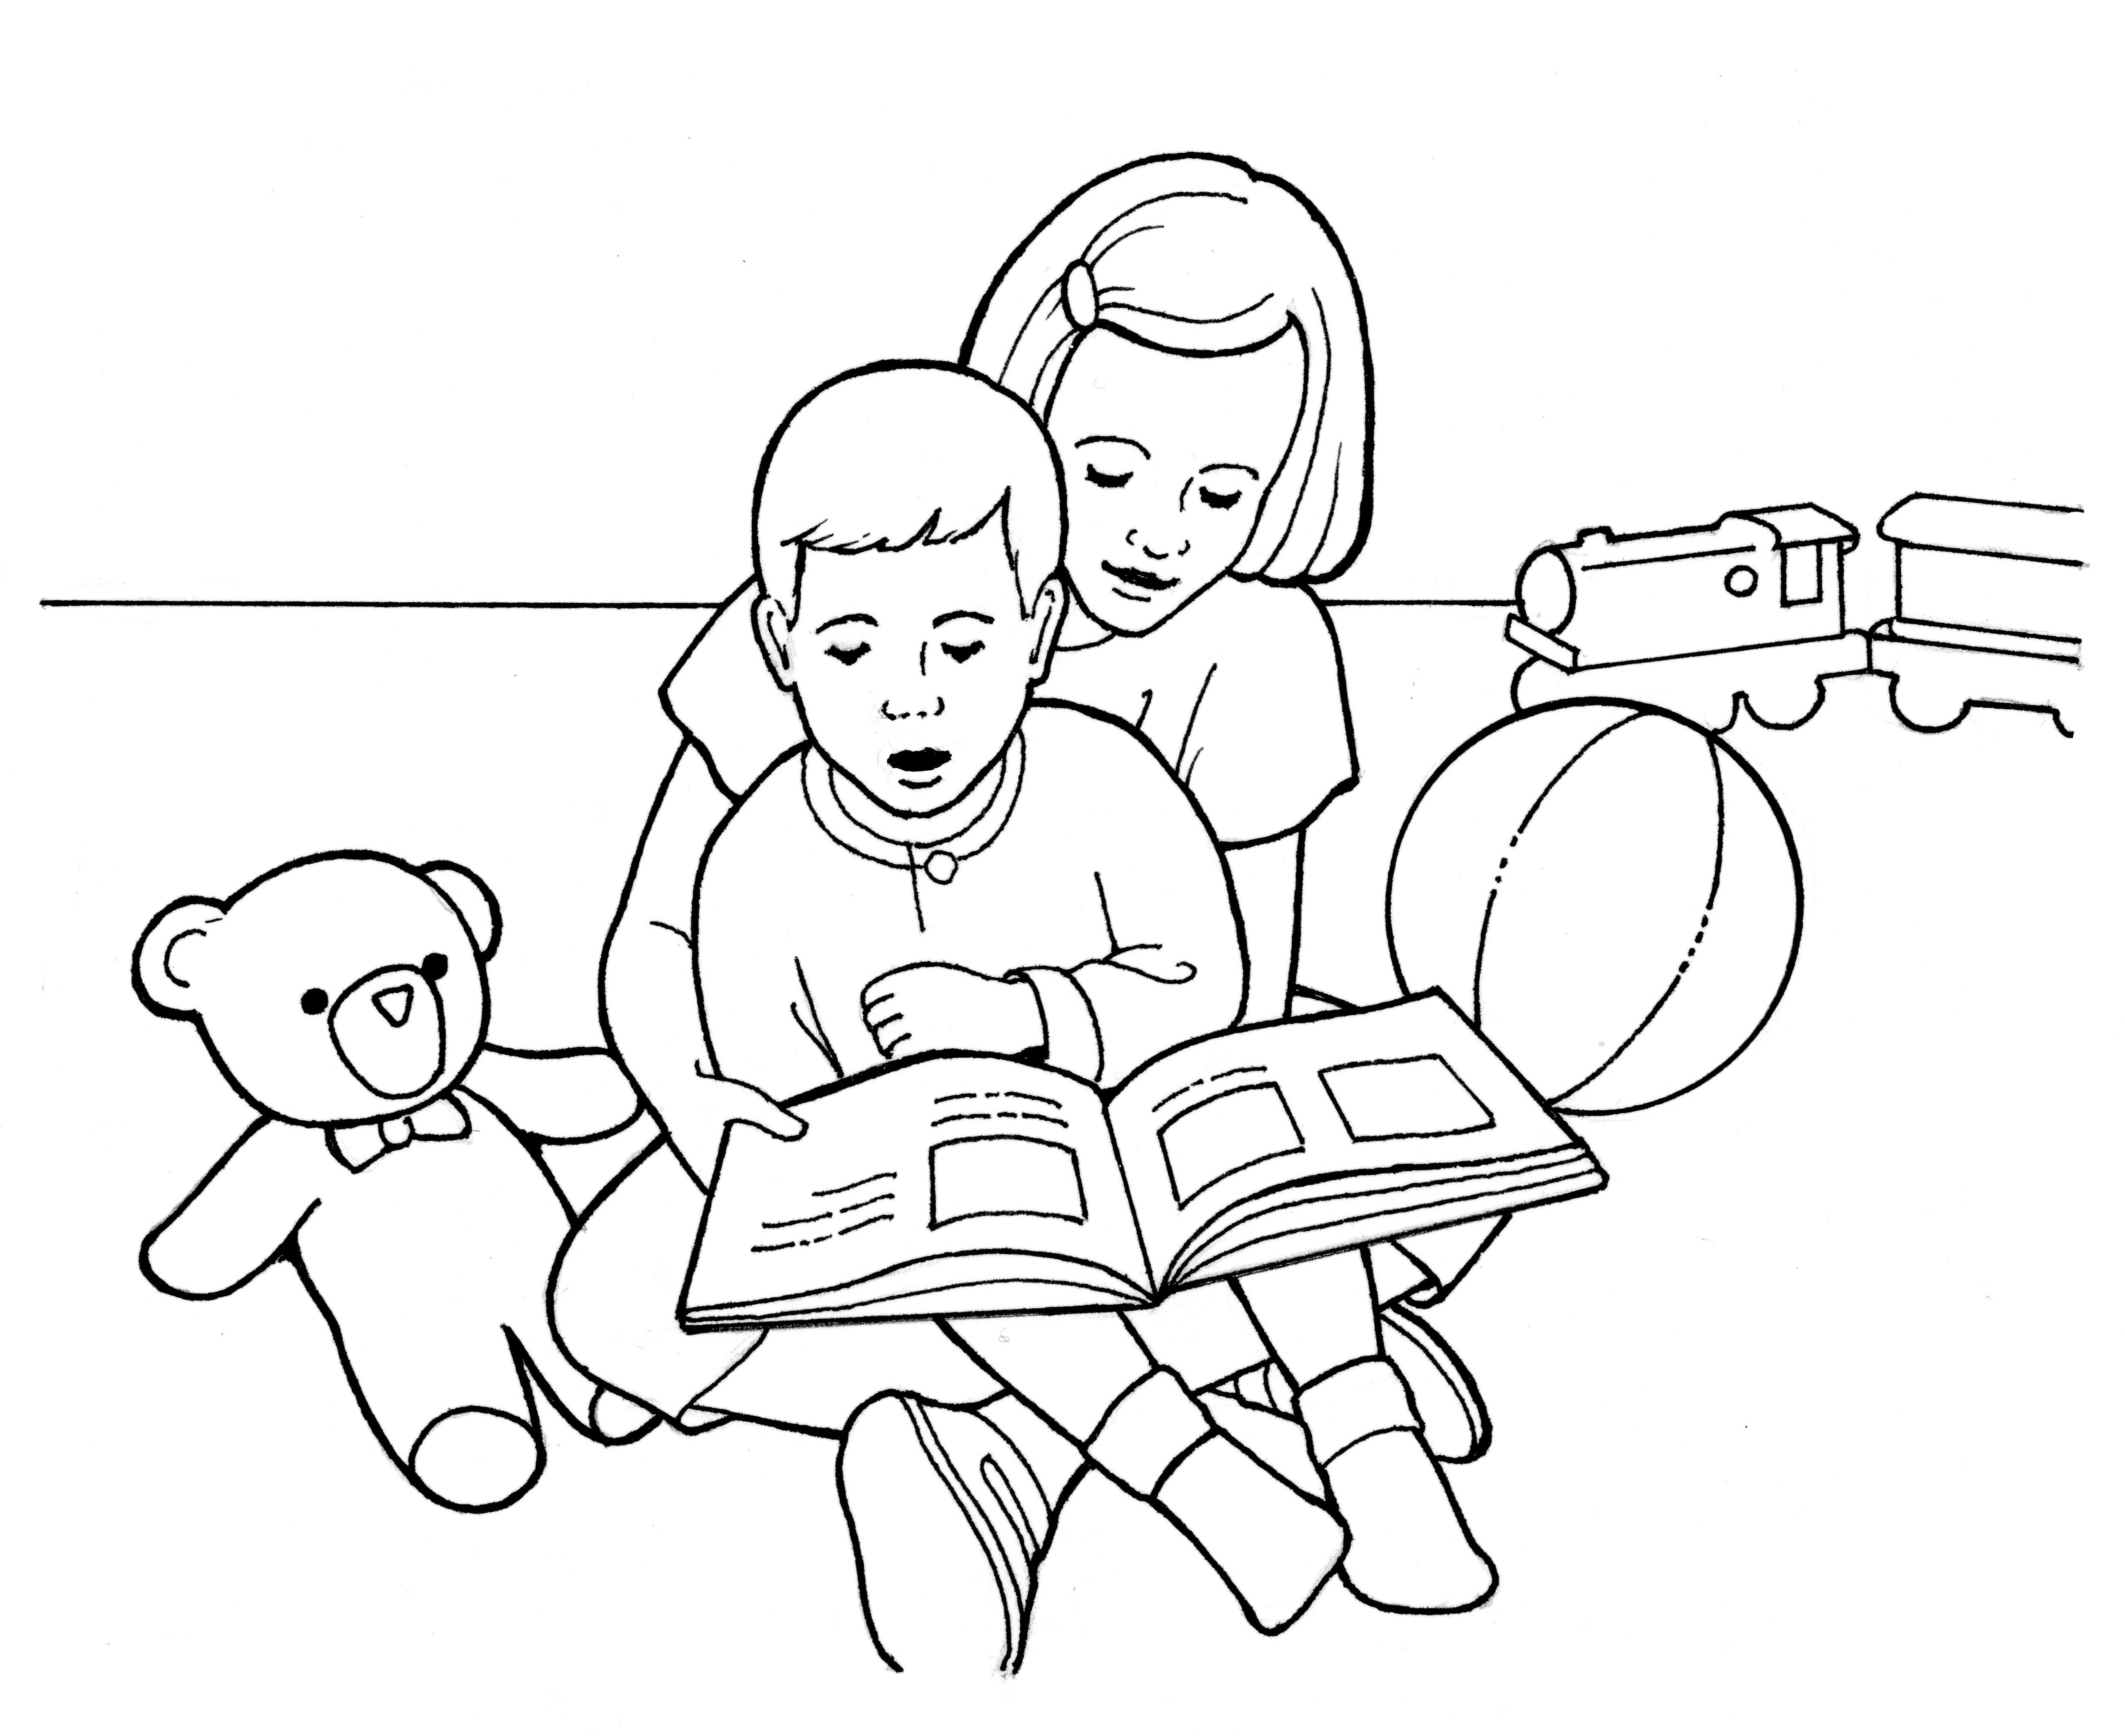 A line drawing of children reading together.